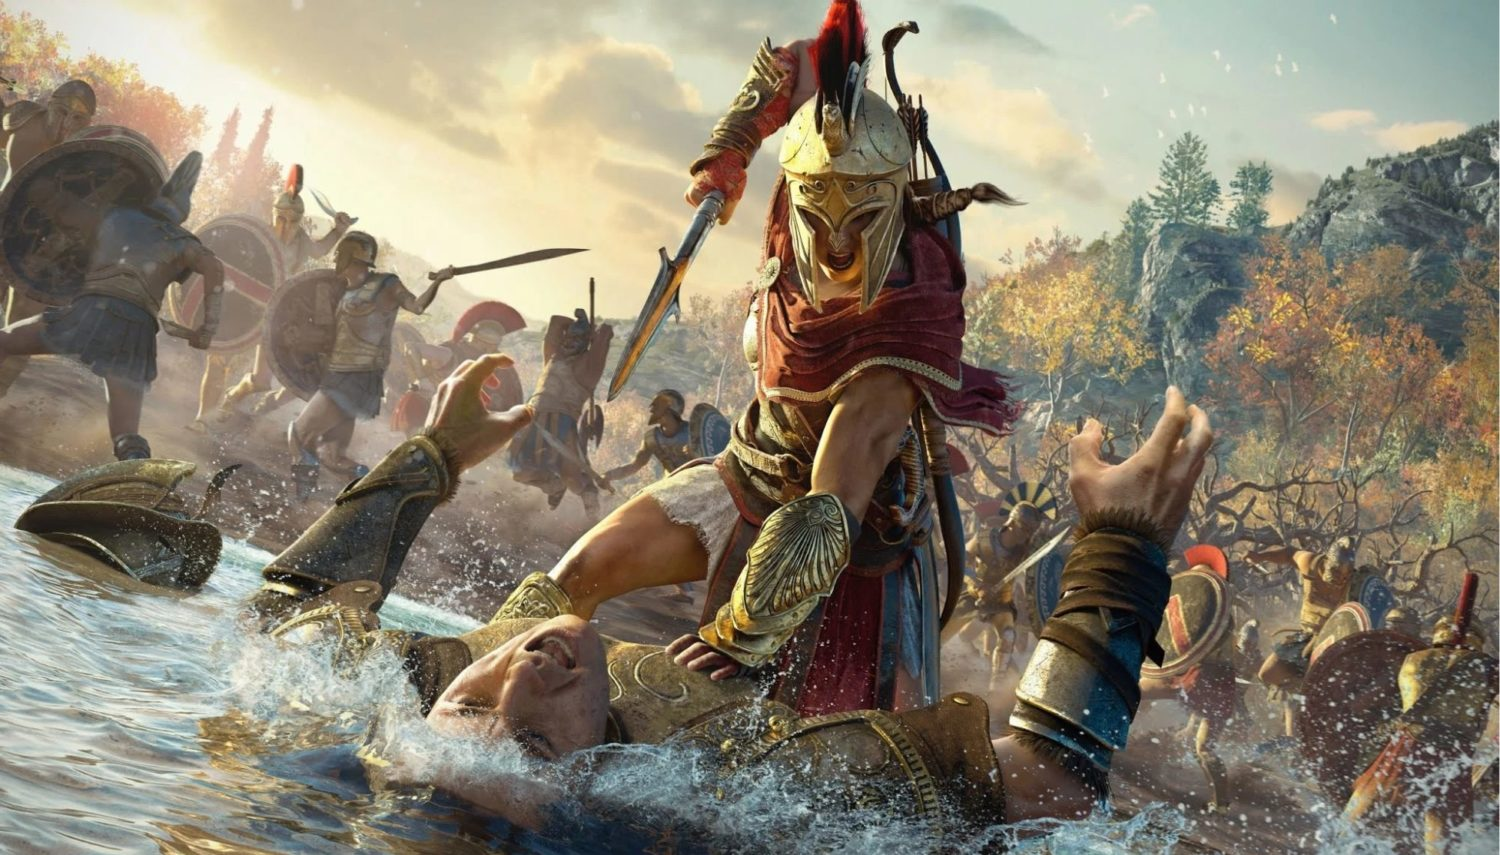 Kassandra Assasin's Creed Odyssey